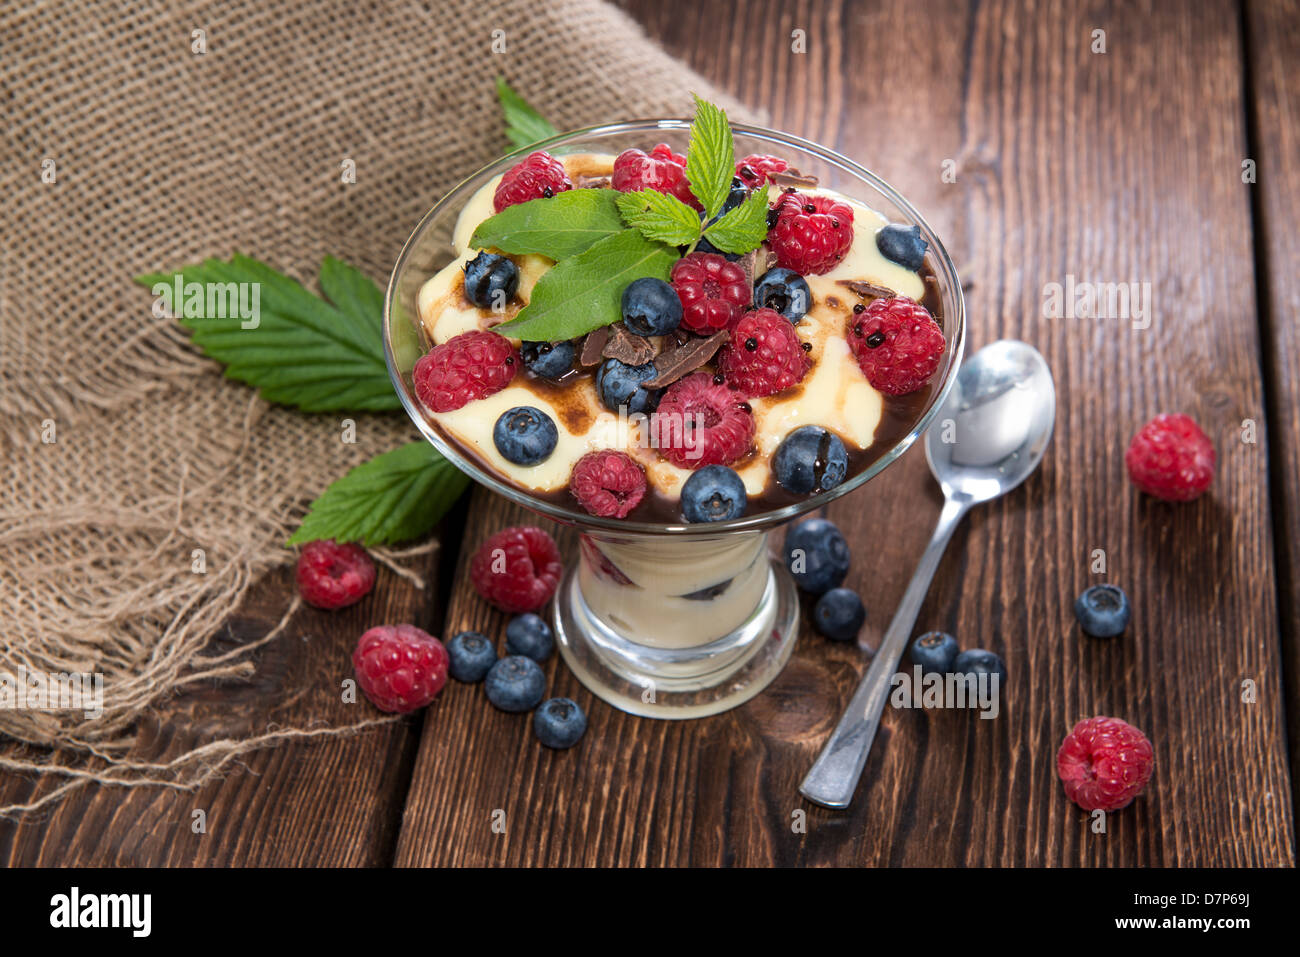 Pudding Dessert with Chocolate Sauce and fresh Berries on wooden background - Stock Image